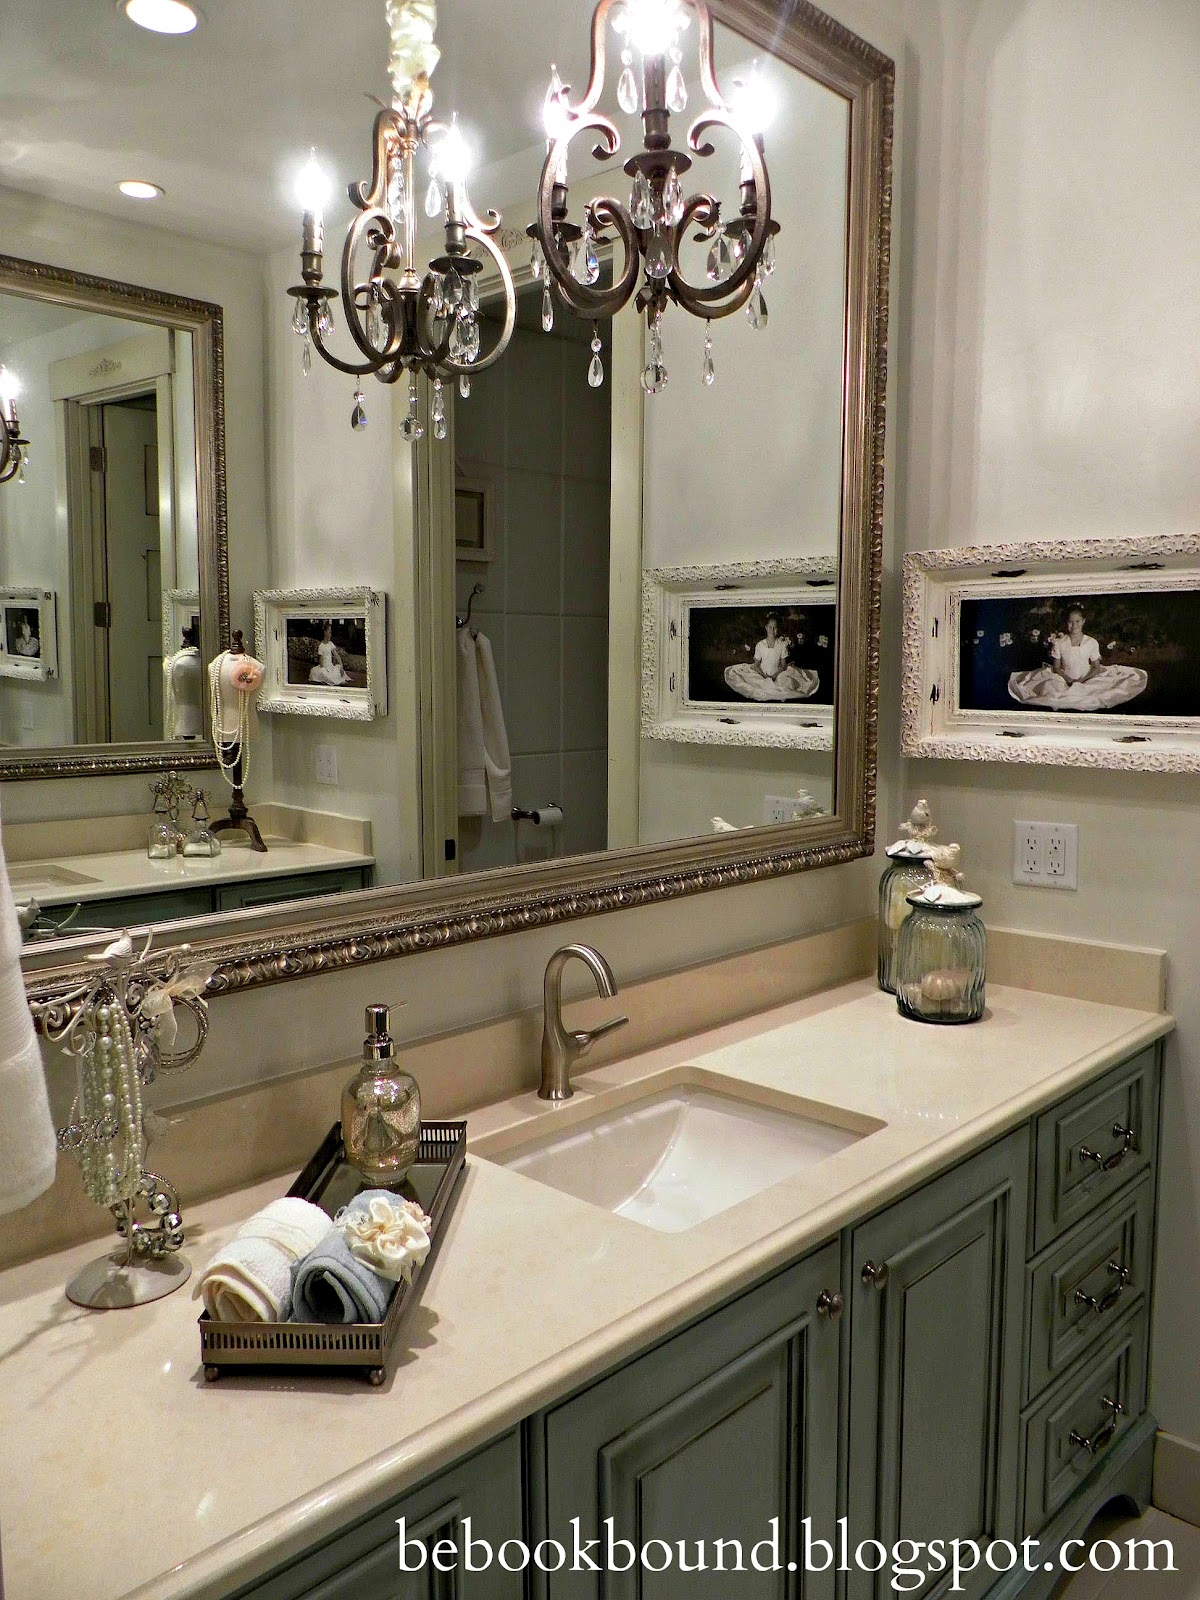 Chandelier For Bathroom Home Design Ideas Pertaining To Chandelier In The Bathroom (#9 of 12)